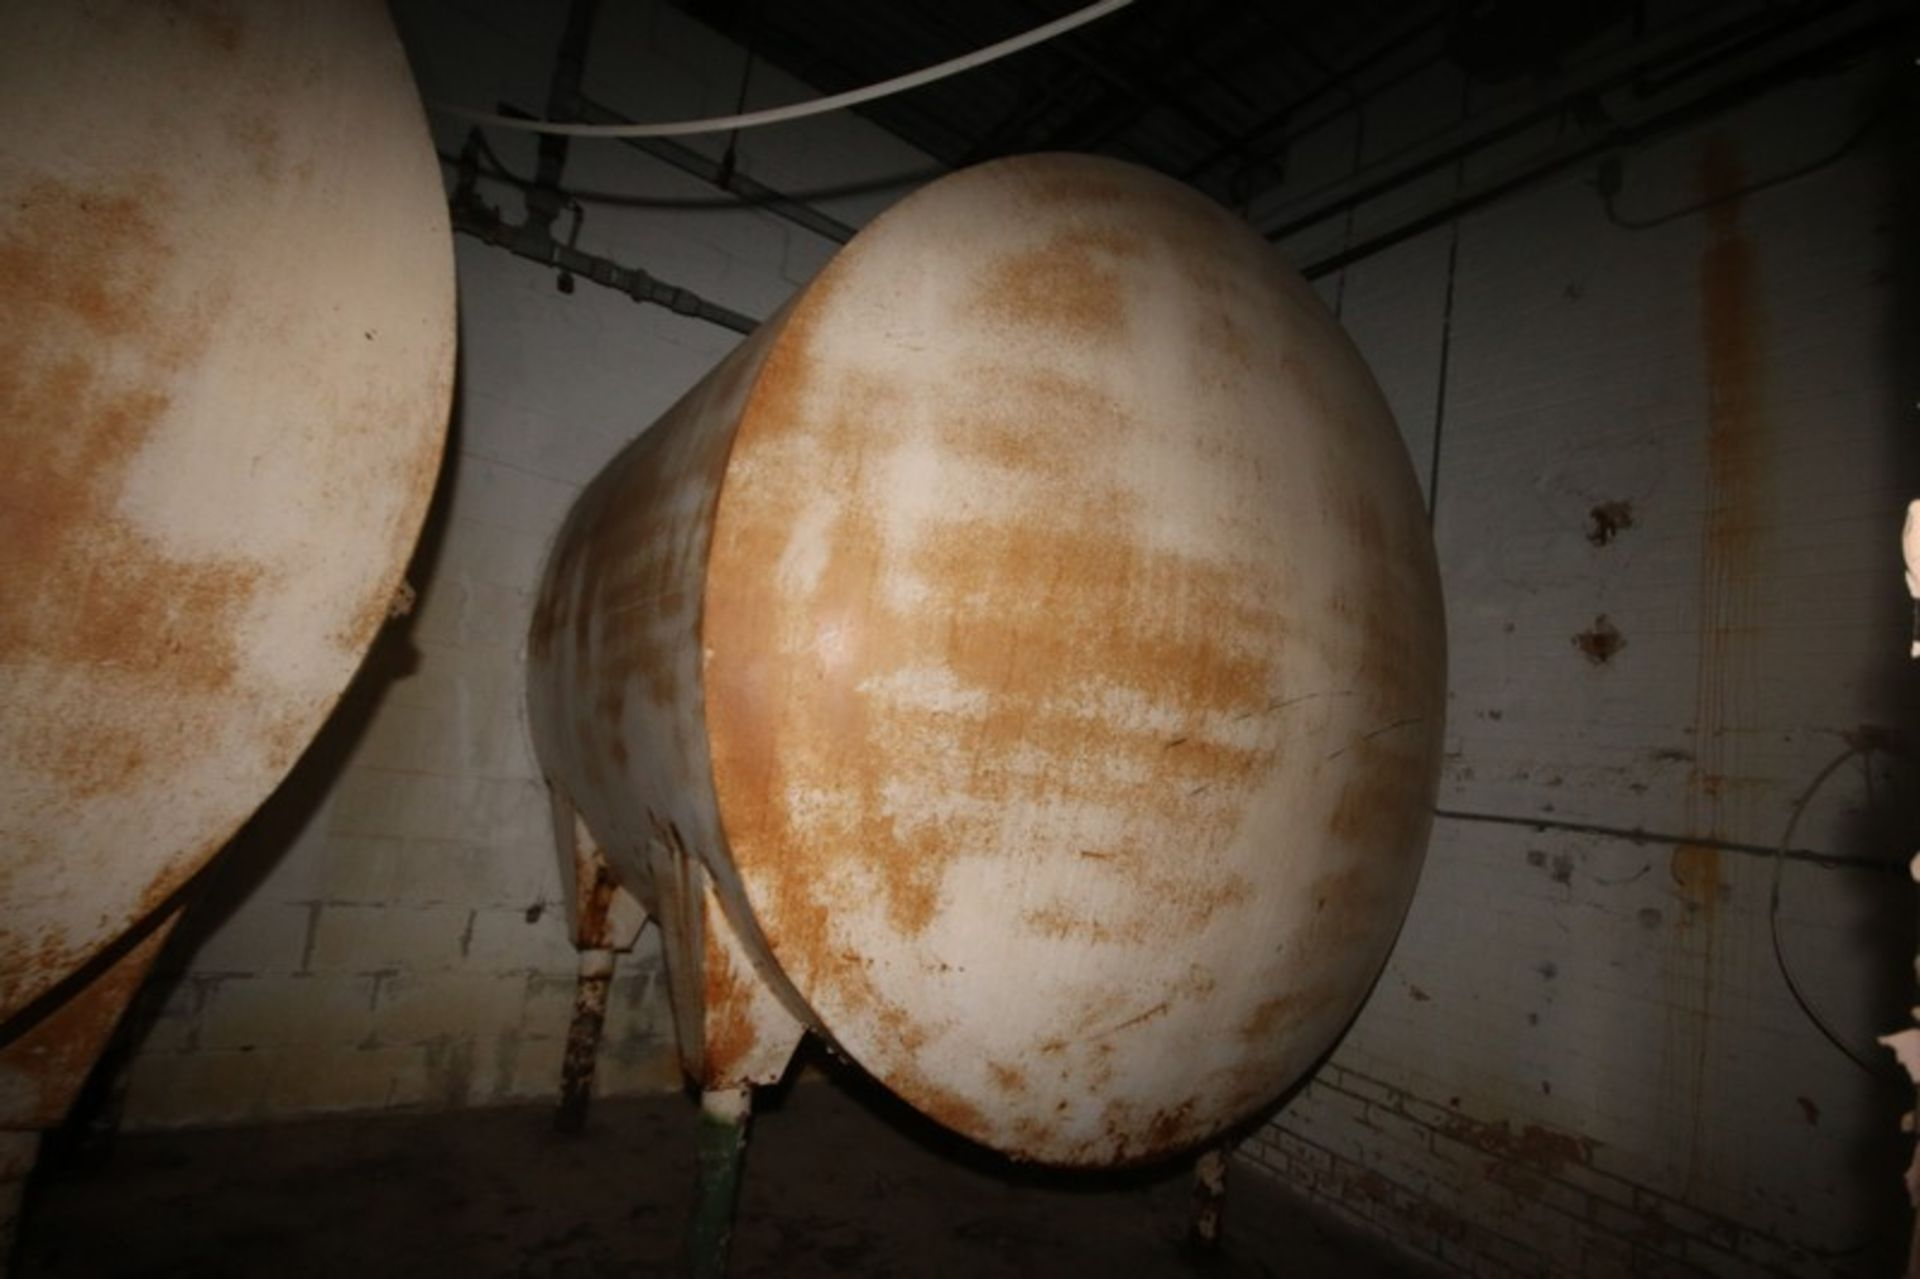 """Aprox. 1,750 Gal S/S Horizontal Tank, with Carbon Steel Sheathing, Dish Heads, Tank Dims.: Aprox 84"""" - Image 5 of 6"""